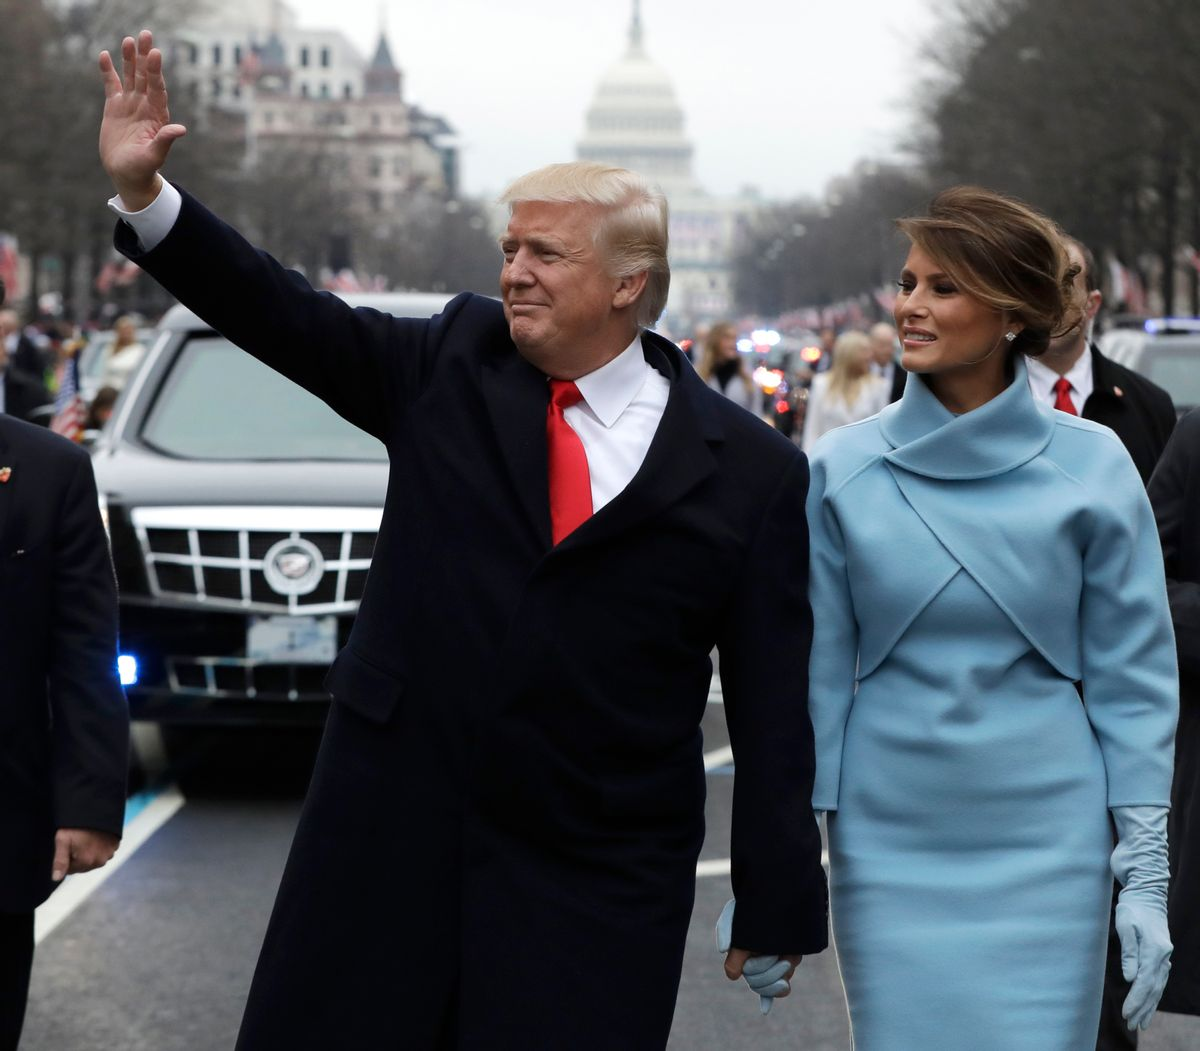 FILE- In this Jan. 20, 2017, file photo, President Donald Trump waves as he walks with first lady Melania Trump during the inauguration parade on Pennsylvania Avenue in Washington. Trump raised $107 million for his inaugural festivities. Trump's inaugural committee is due to file information about those donors with the Federal Election Commission and said it would do so on Tuesday, April 18. (AP Photo/Evan Vucci, Pool, File) (AP)